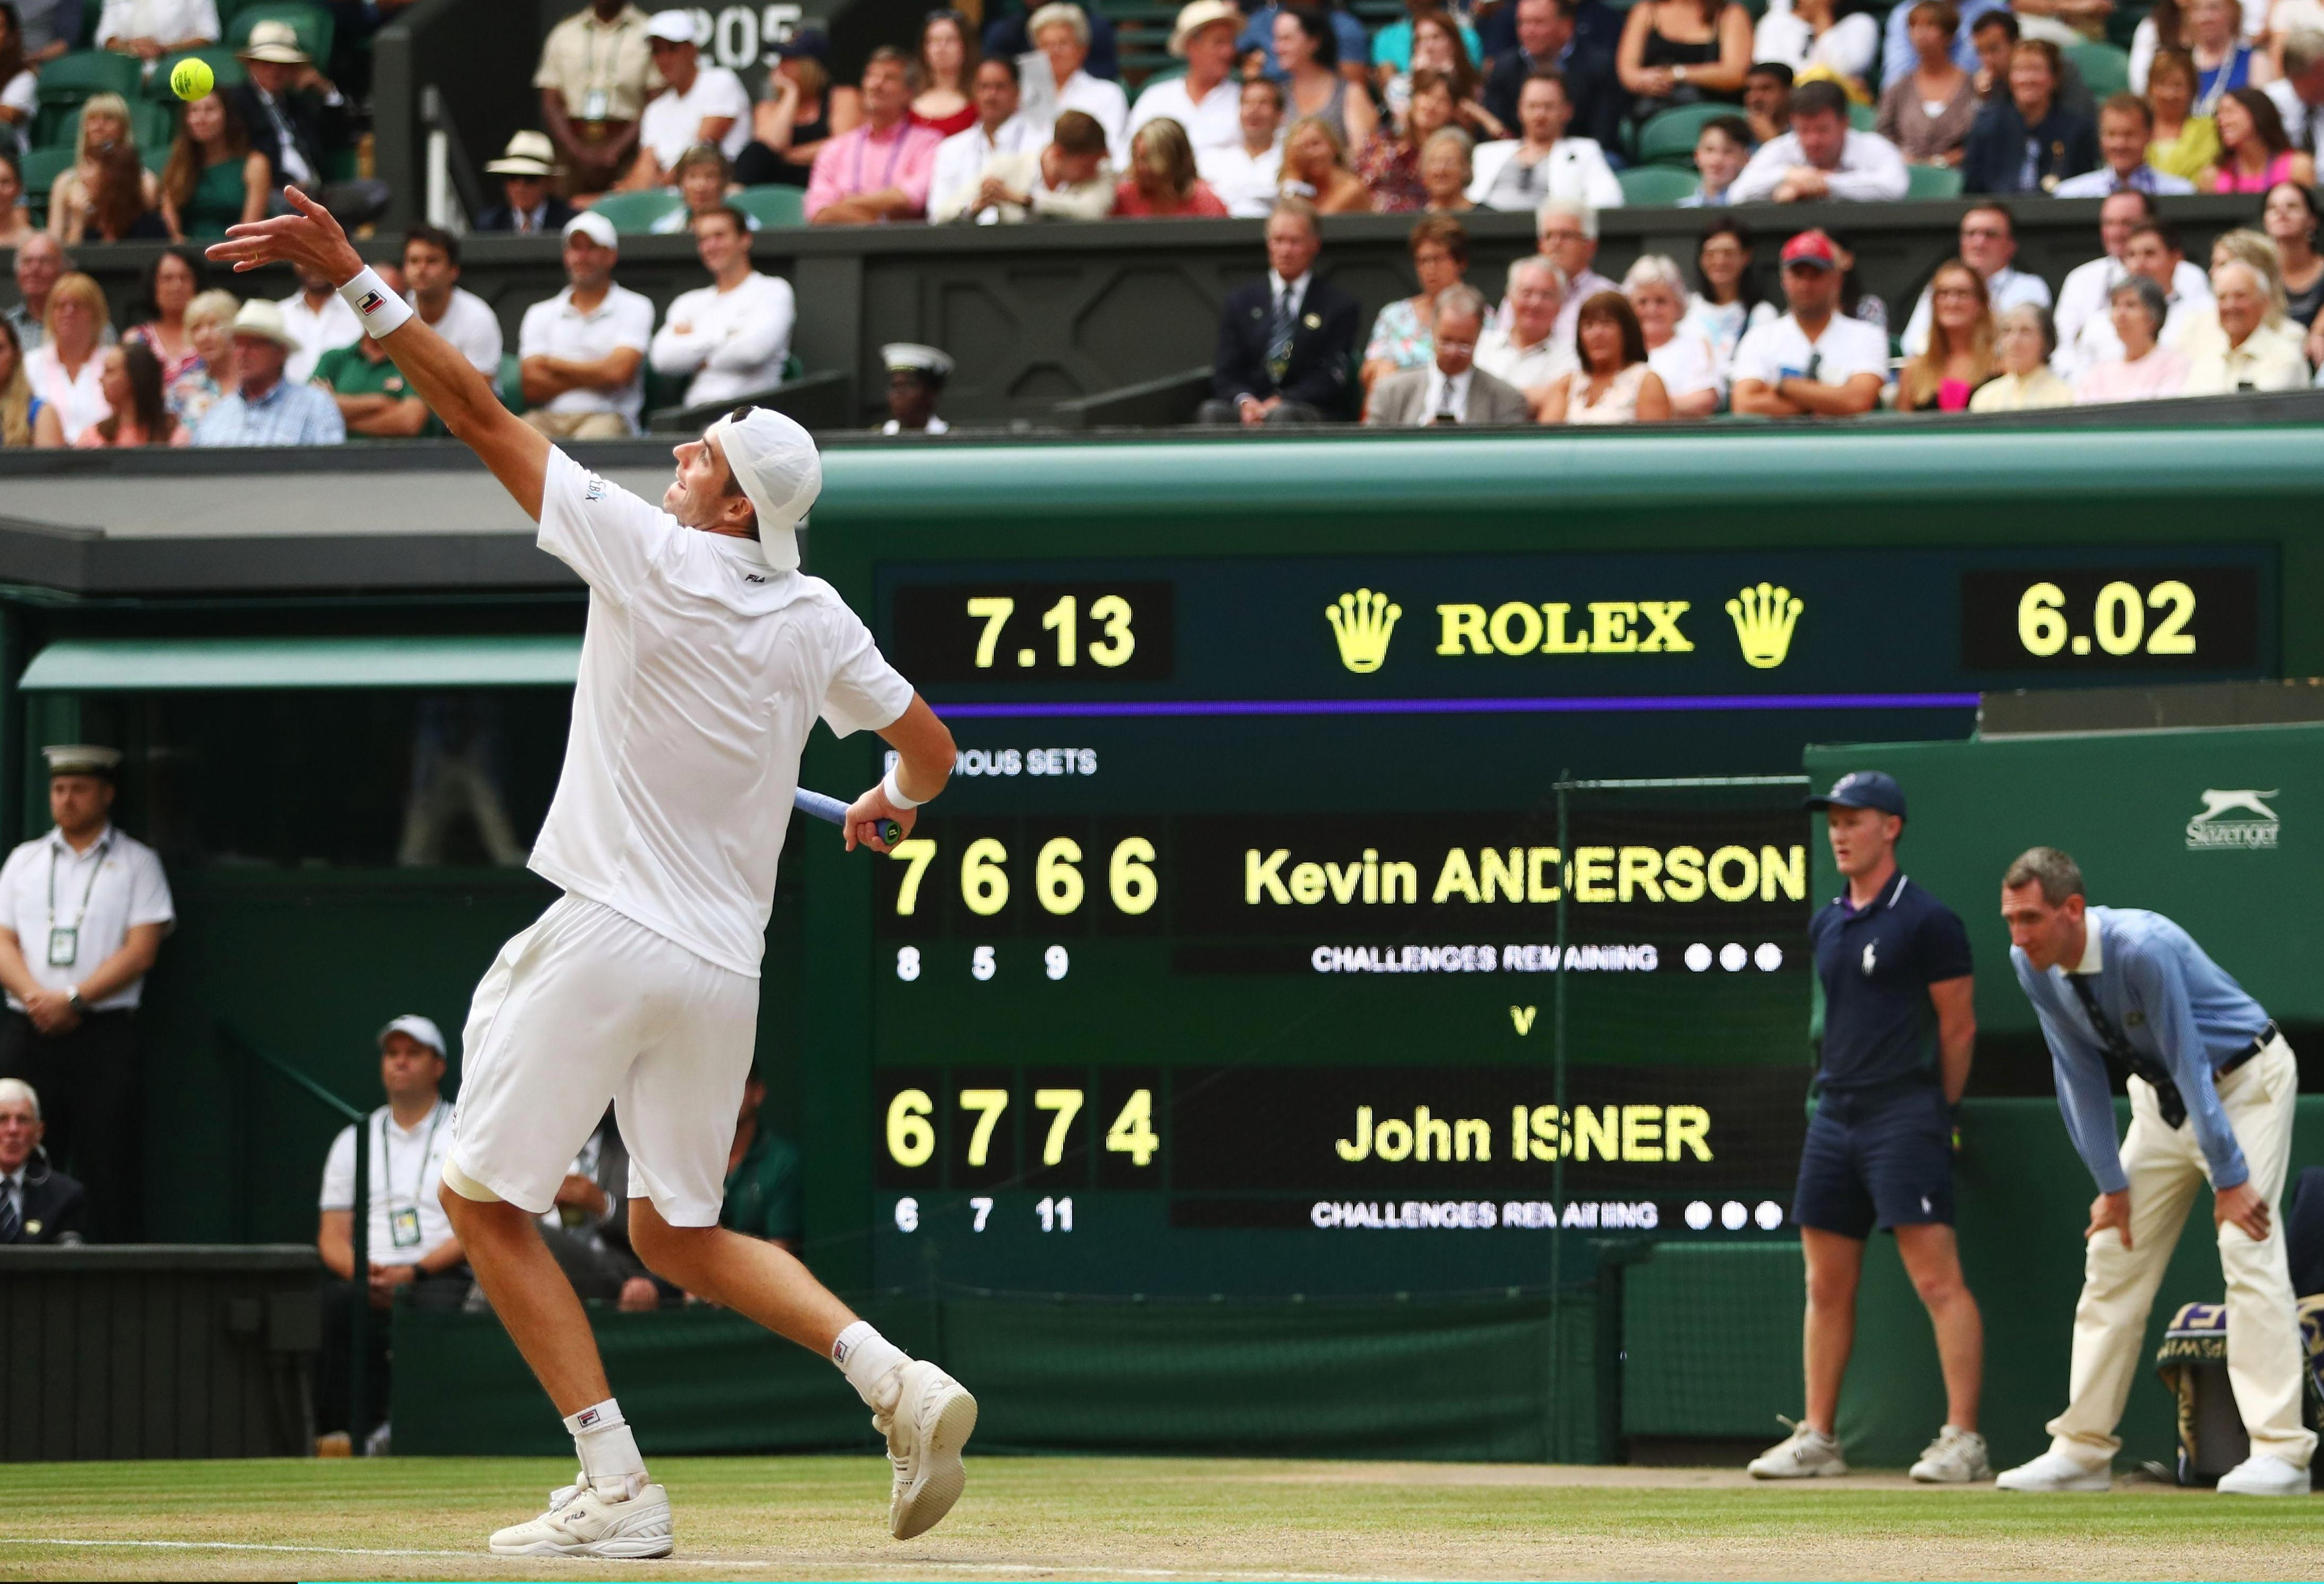 John Isner sends down another rocket as the contest passed the six-hour mark